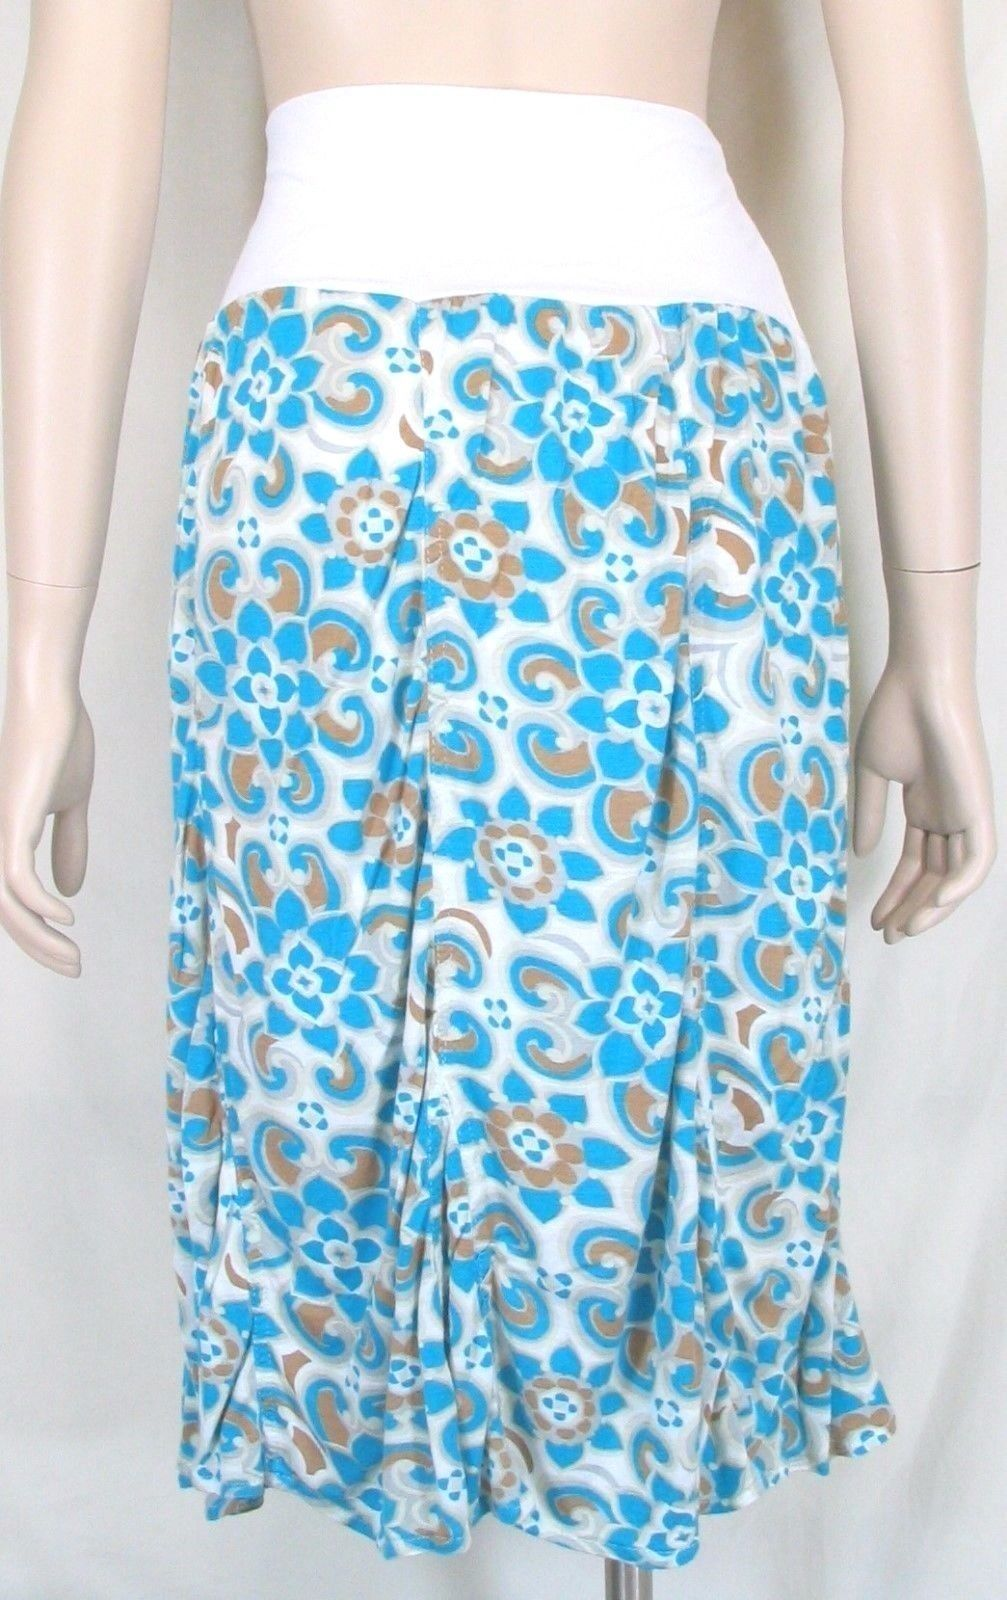 Surrealist skirt NWT M foldover waist ruched bottom white turquoise gold USA new